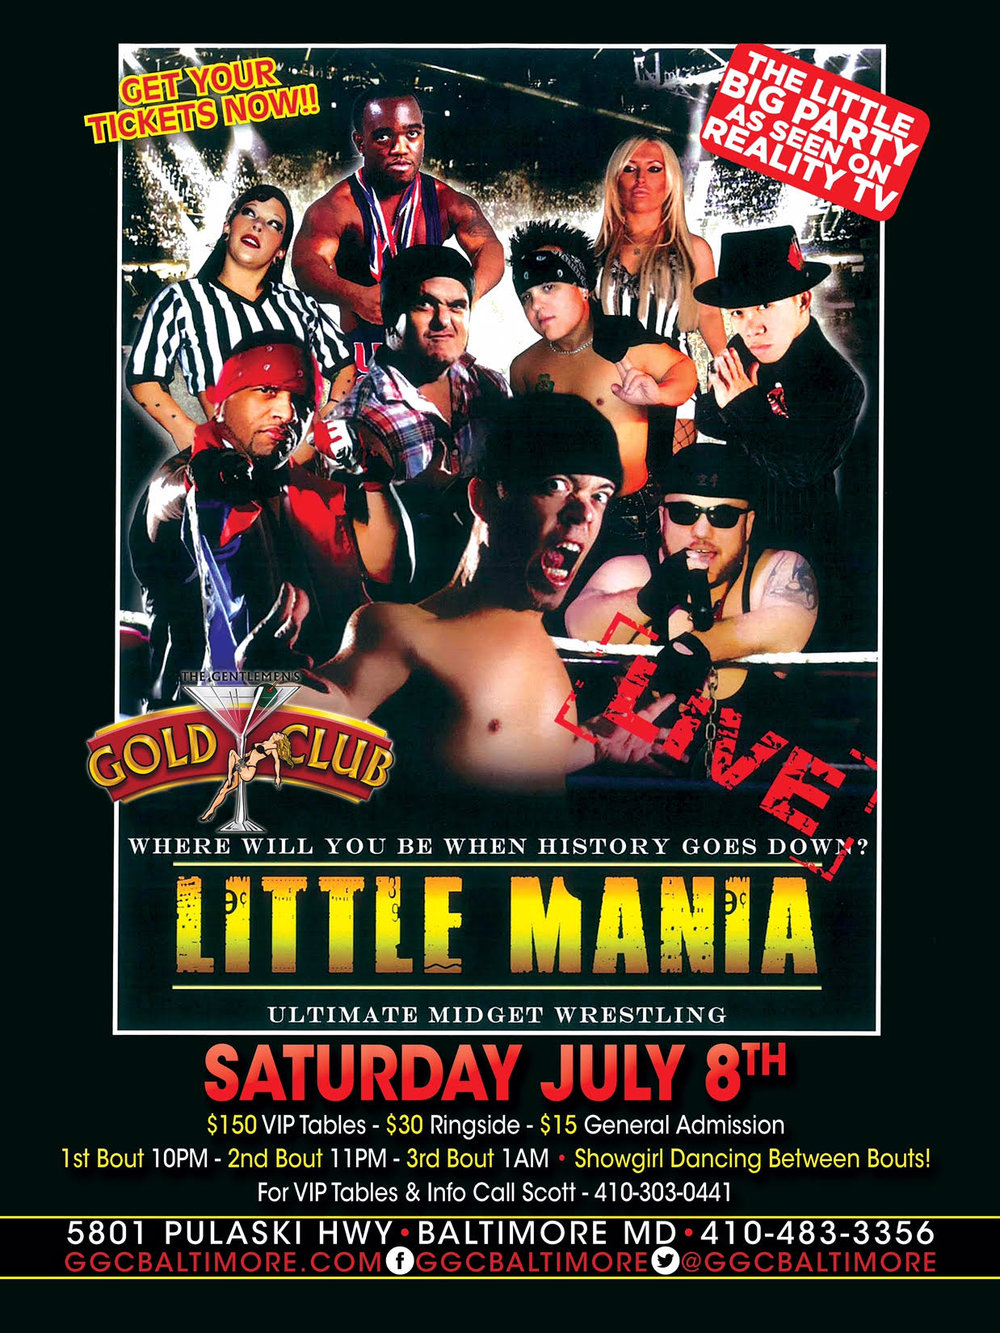 Little Mania is back LIVE at The Gentlemen's Gold Club! Don't miss this low flying action as these small wonders take over the GOLD CLUB! Wrestling & Strippers is a must see event! Tickets on sale now and will go fast! This event could sell out! Call the club at (410) 483-3356 or Scott at (410) 303-0441 for reservations and tickets.